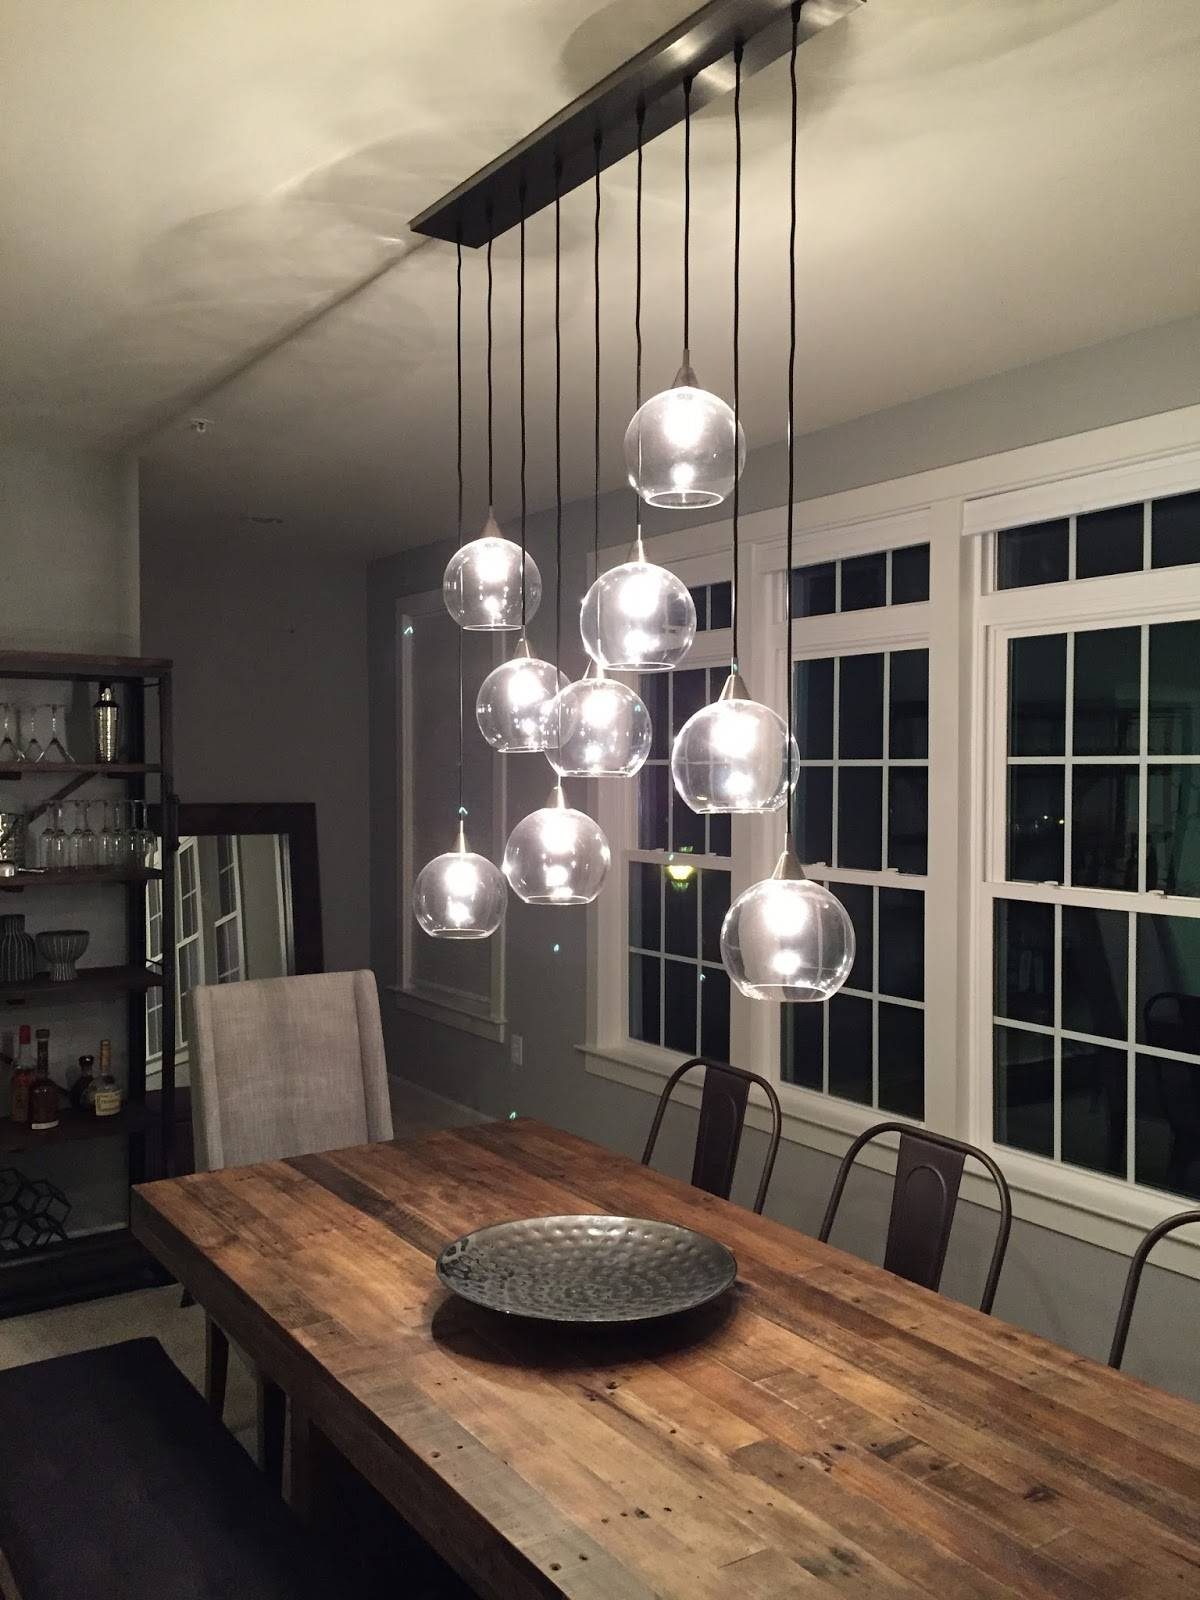 Whats New? Some Progress Finally! | Building Our Nvhomes Andrew intended for Cb2 Pendant Lighting (Image 15 of 15)